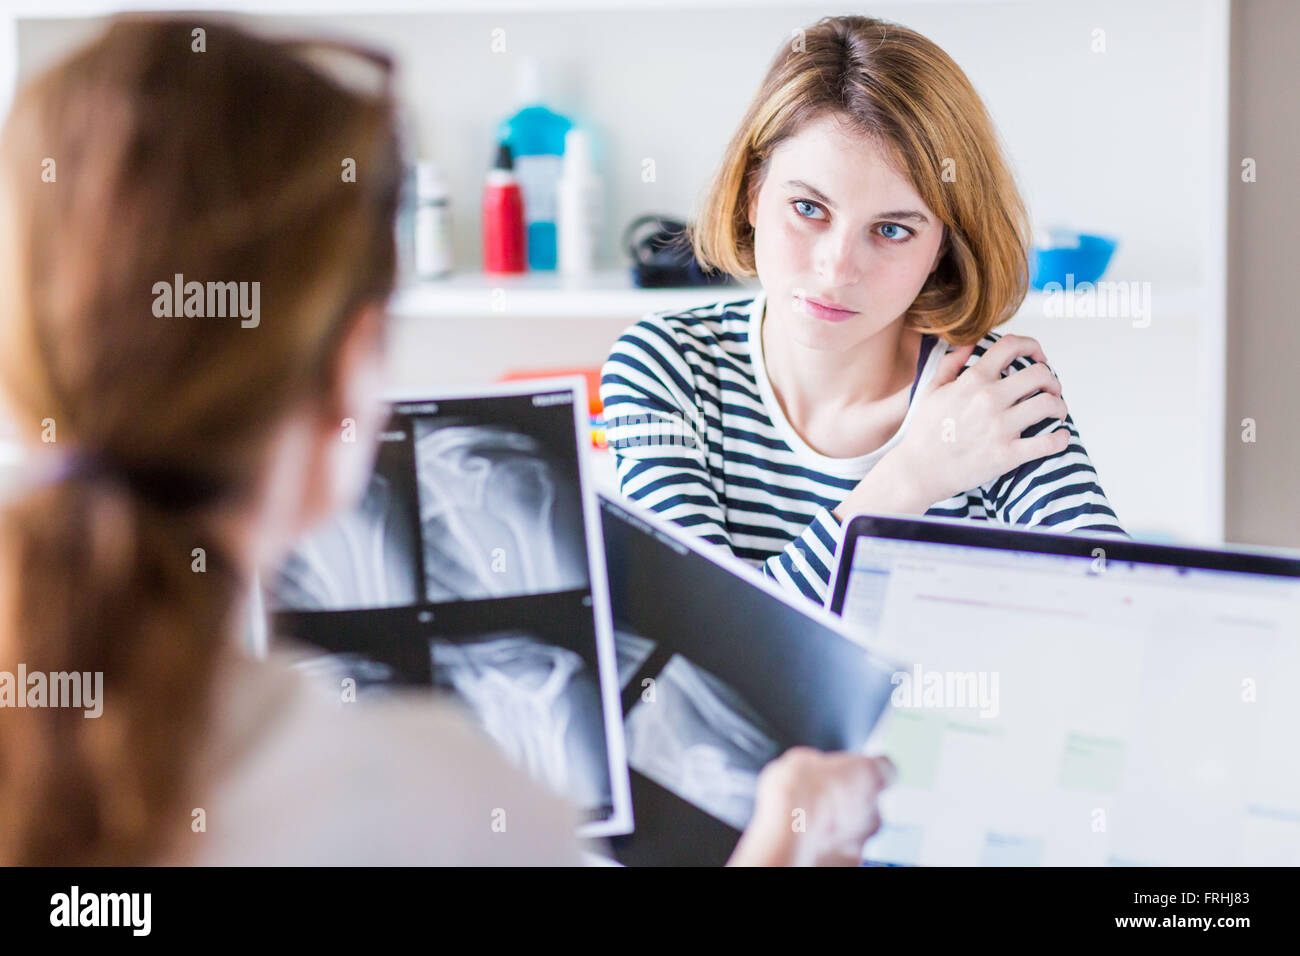 Woman consulting for shoulder pain. - Stock Image